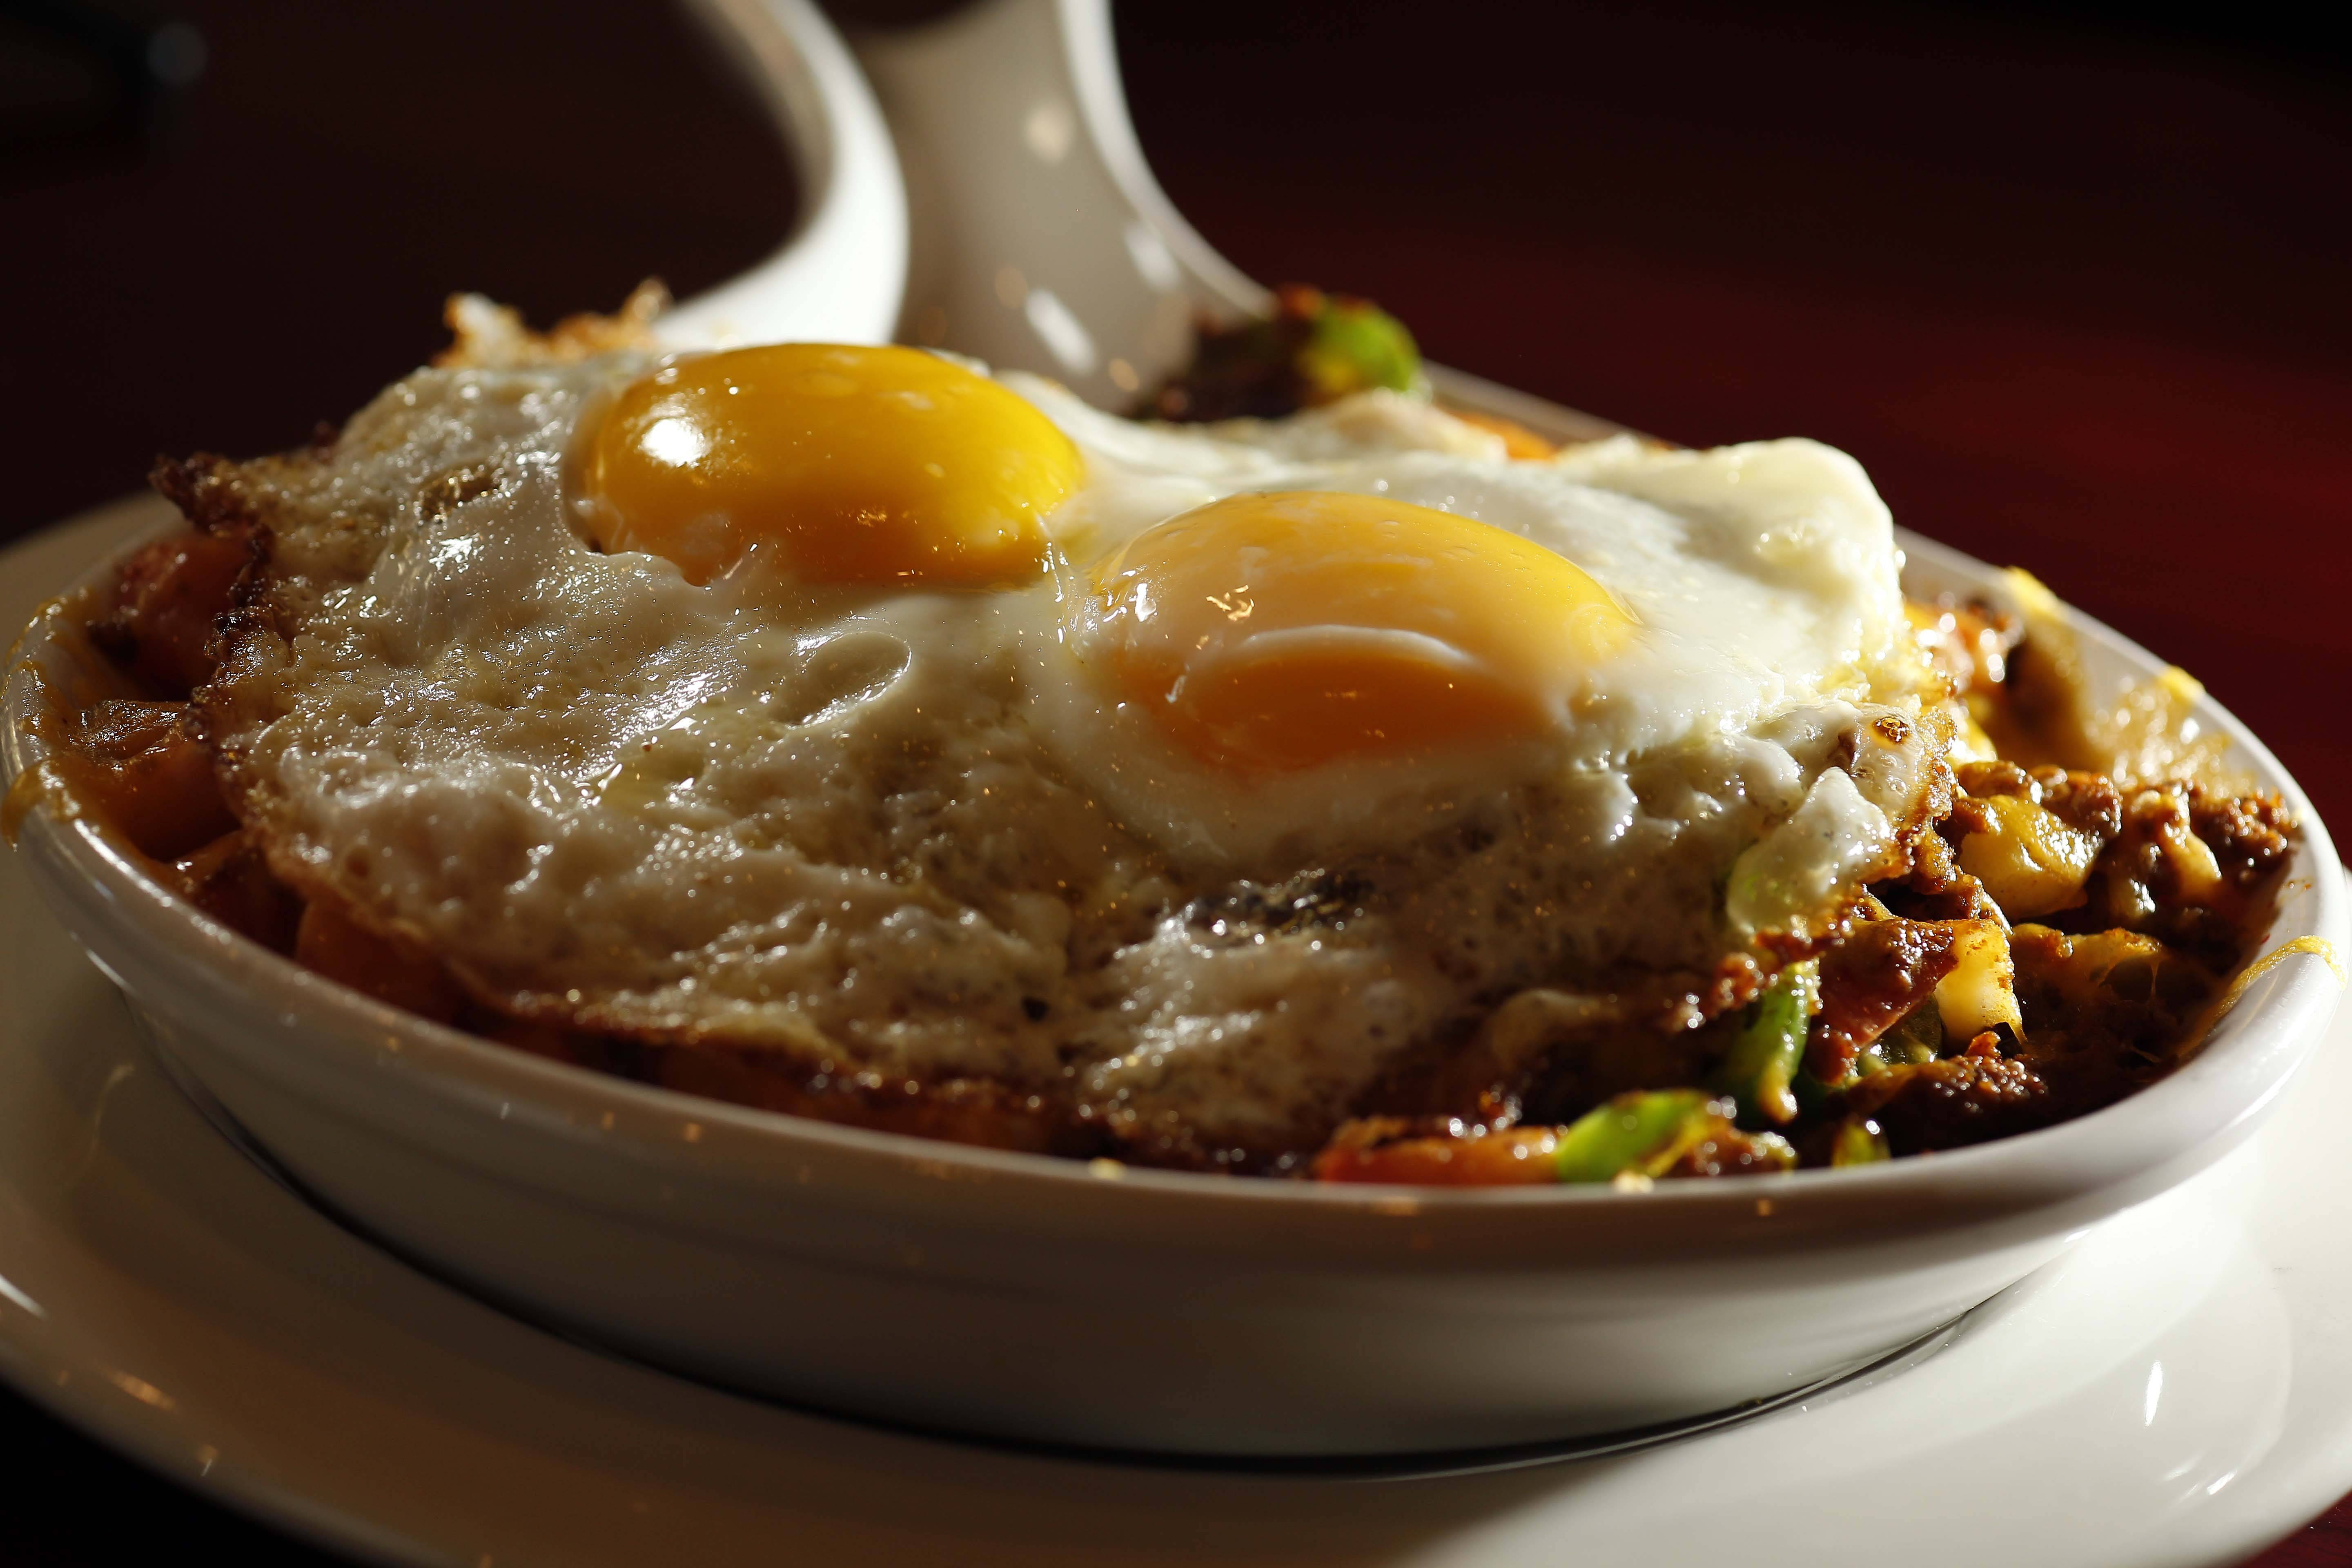 The Ay Carumba skillet is a popular pick at Brunch Cafe that is opening its seventh suburban location.